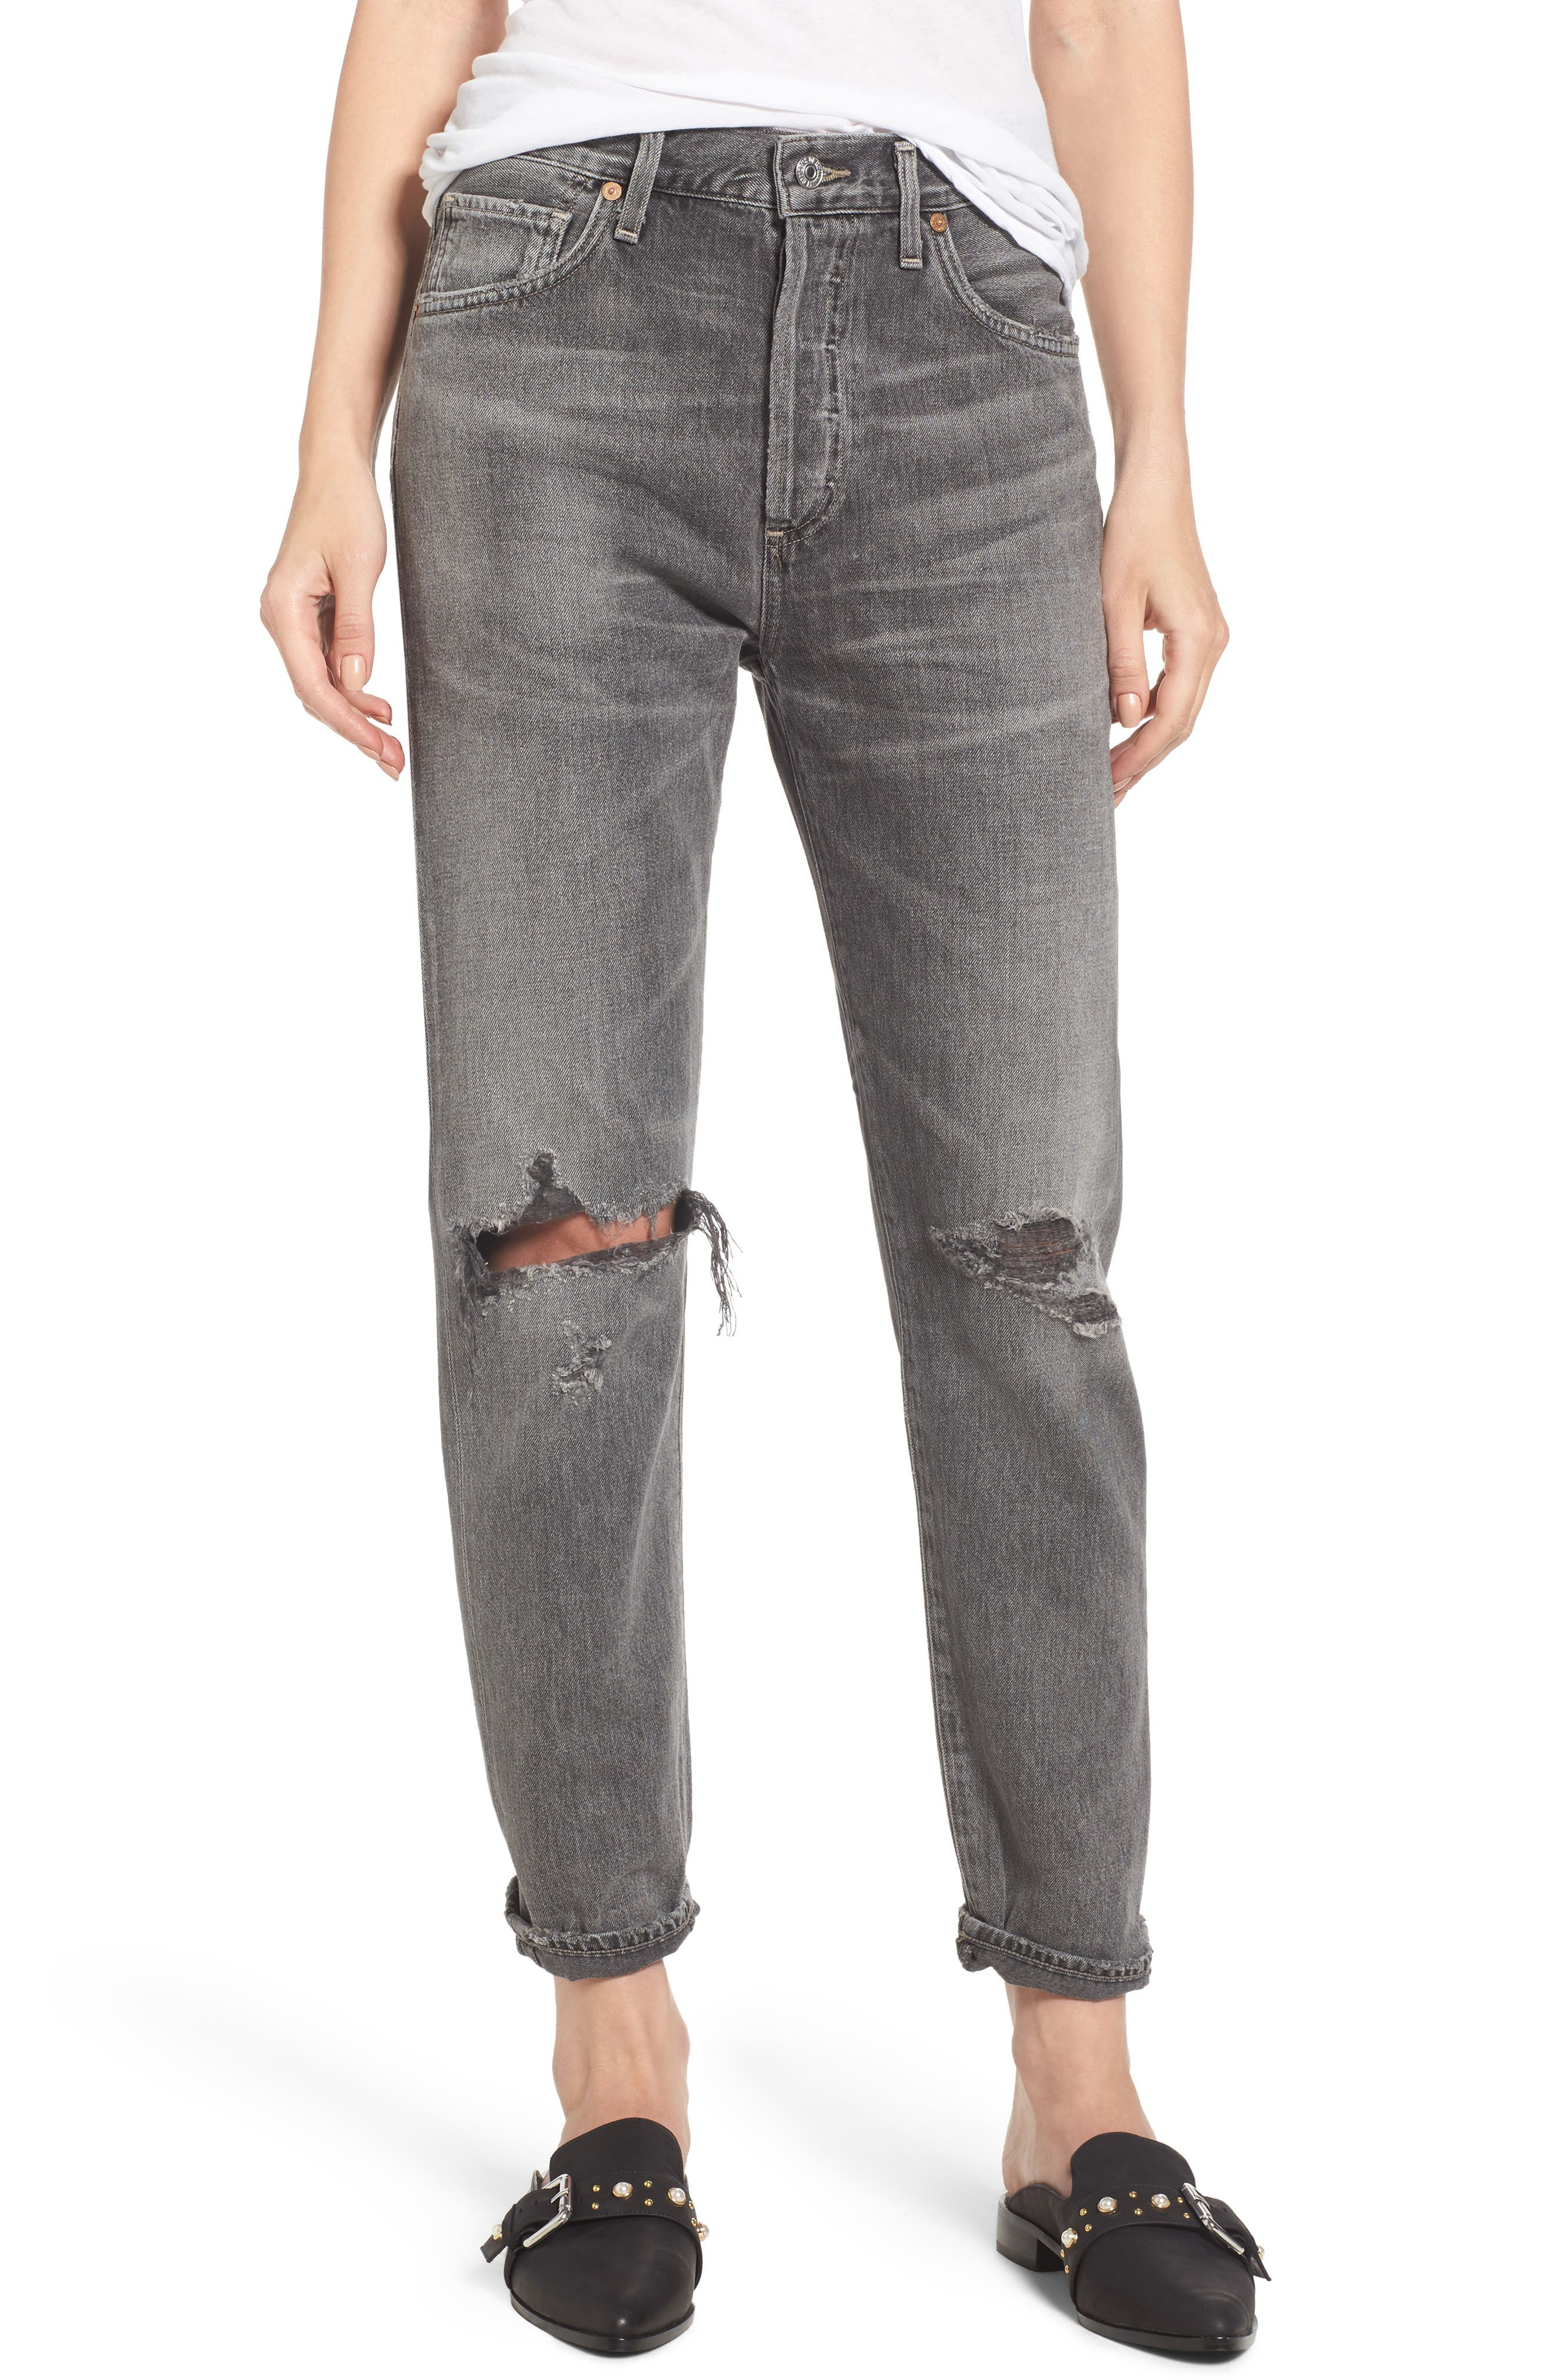 Alternate Image 1 Selected - Citizens of Humanity Liya High Waist Boyfriend Jeans (Extreme)